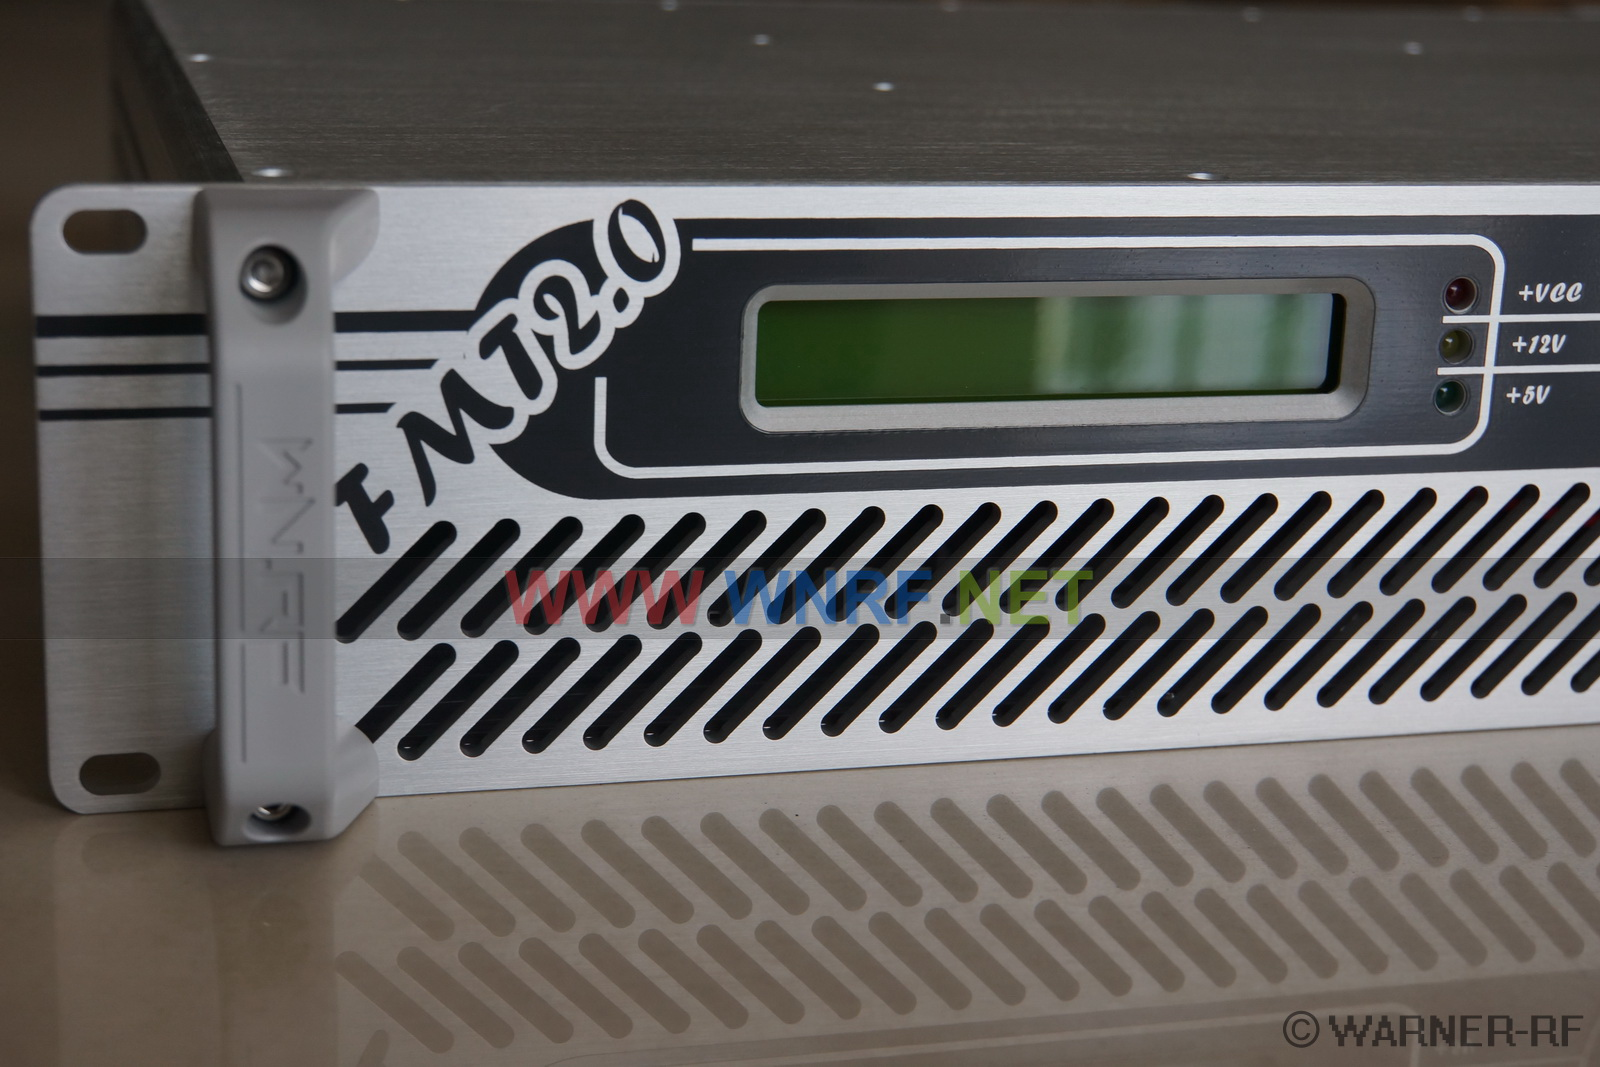 [FMT2.0-150A] 150W FM stereo broadcast transmitter